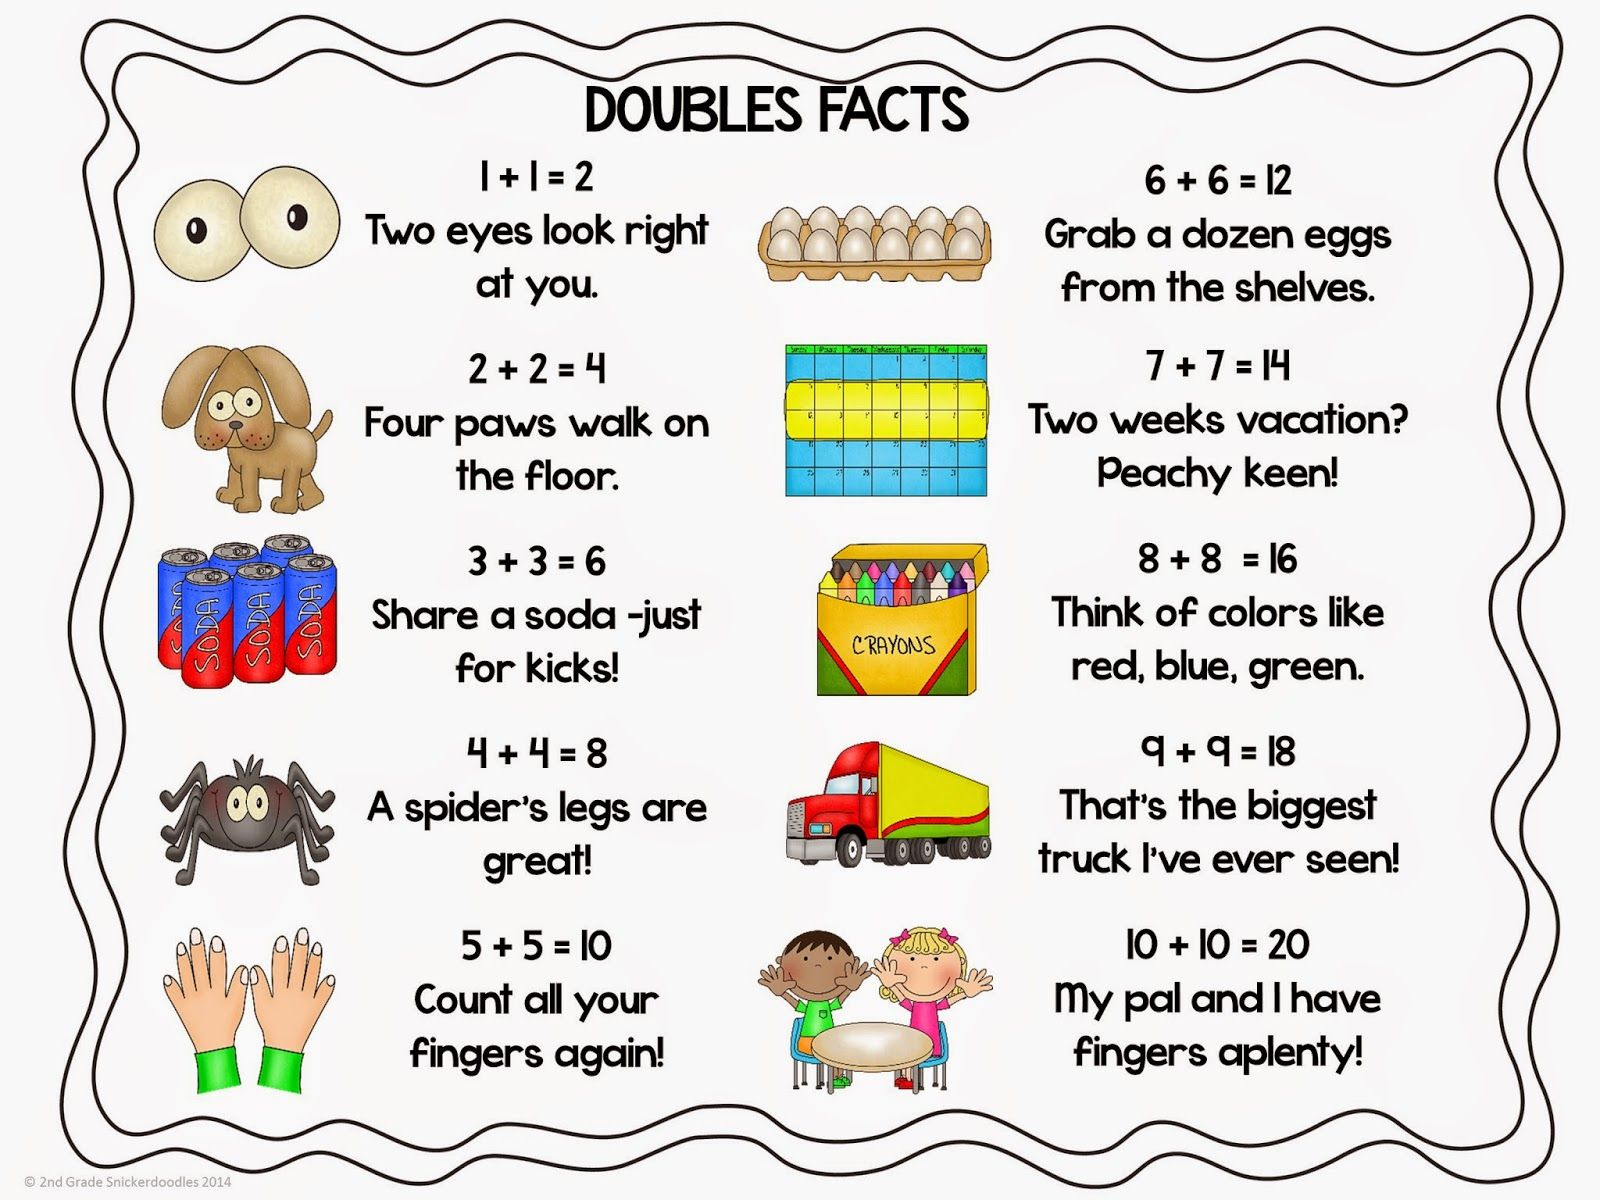 2nd Grade Snickerdoodles Doubles Facts Freebie